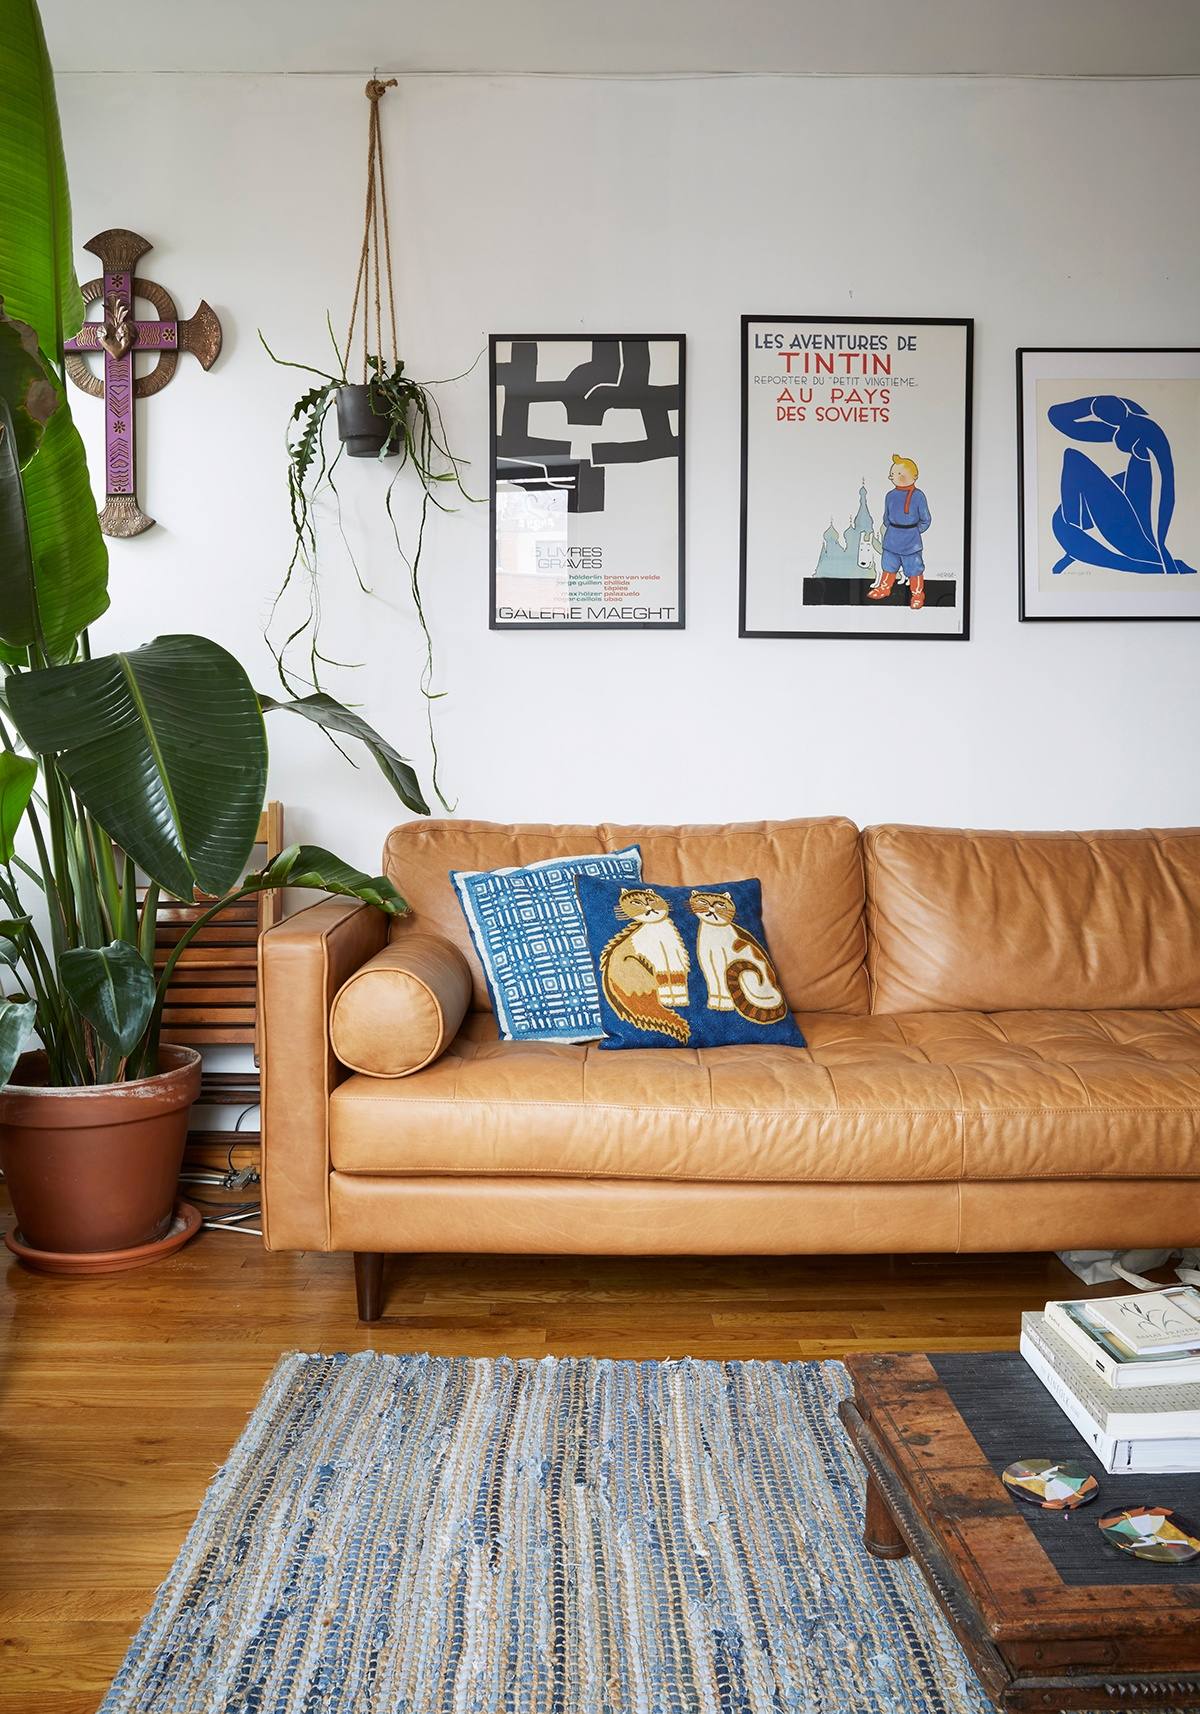 Ahead, Tour His Once Uninspiring 850 Square Foot Apartment, Now A Bright  And Airy Top Floor Escape Outfitted With Soft Hued Mid Century Modern  Furniture, ...